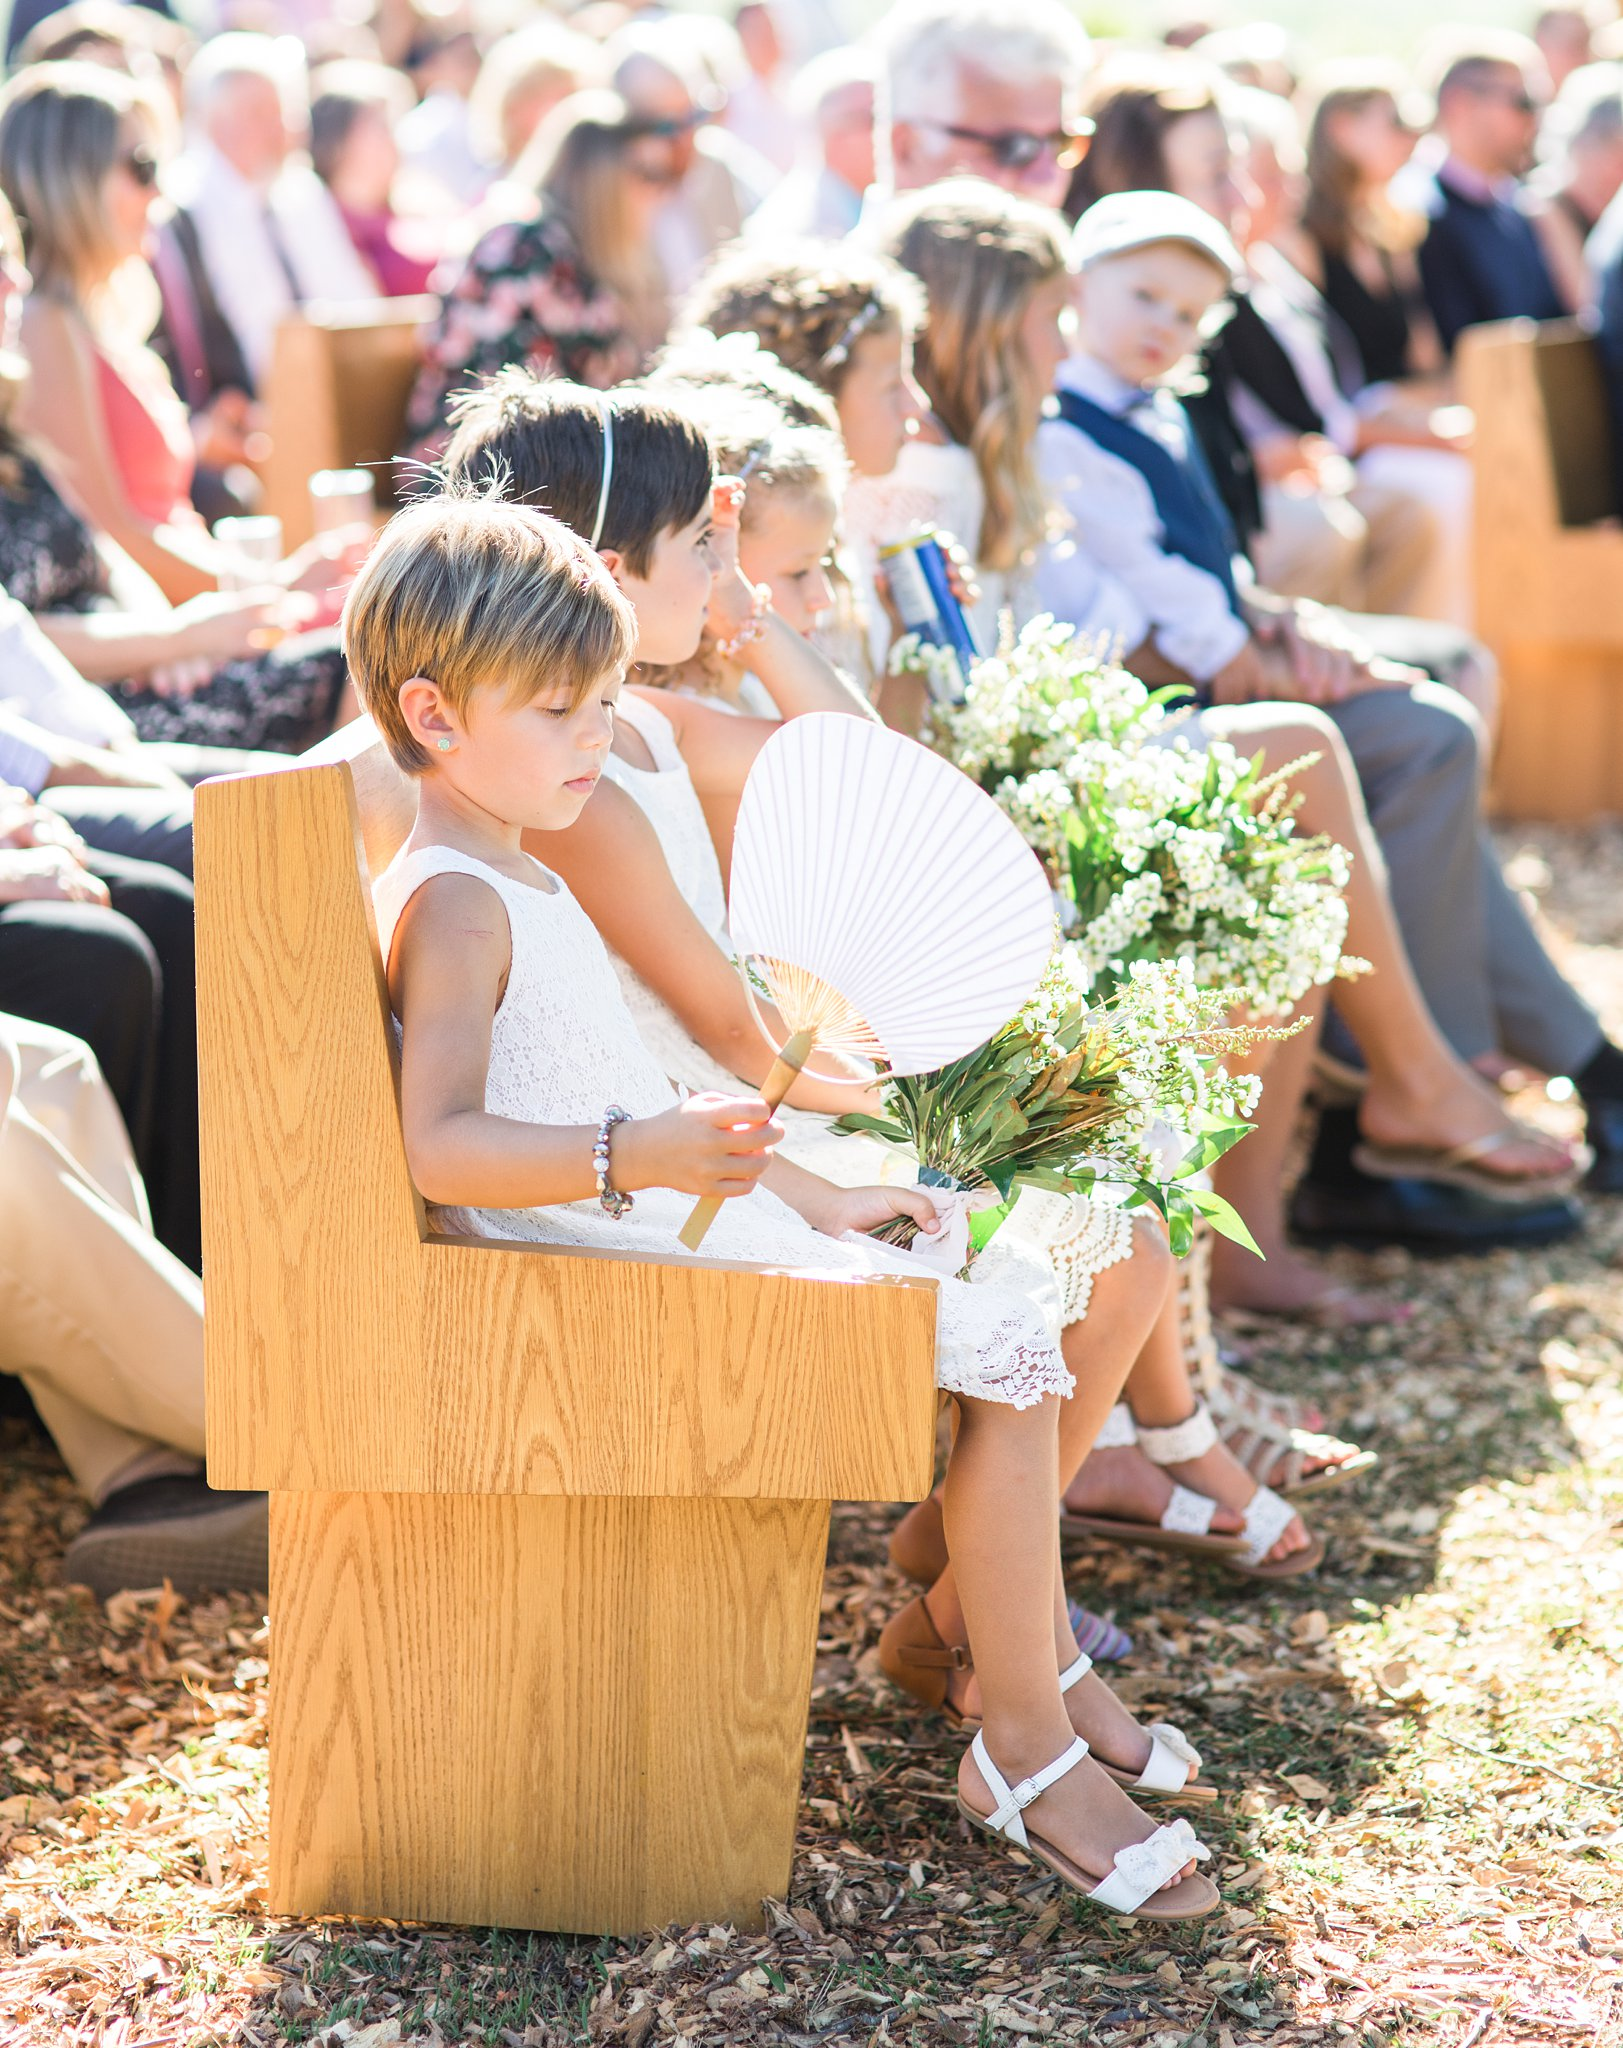 Outdoor ceremony, flower girl, paper fan, Private Estate Wedding Photos, Amy Pinder Photography